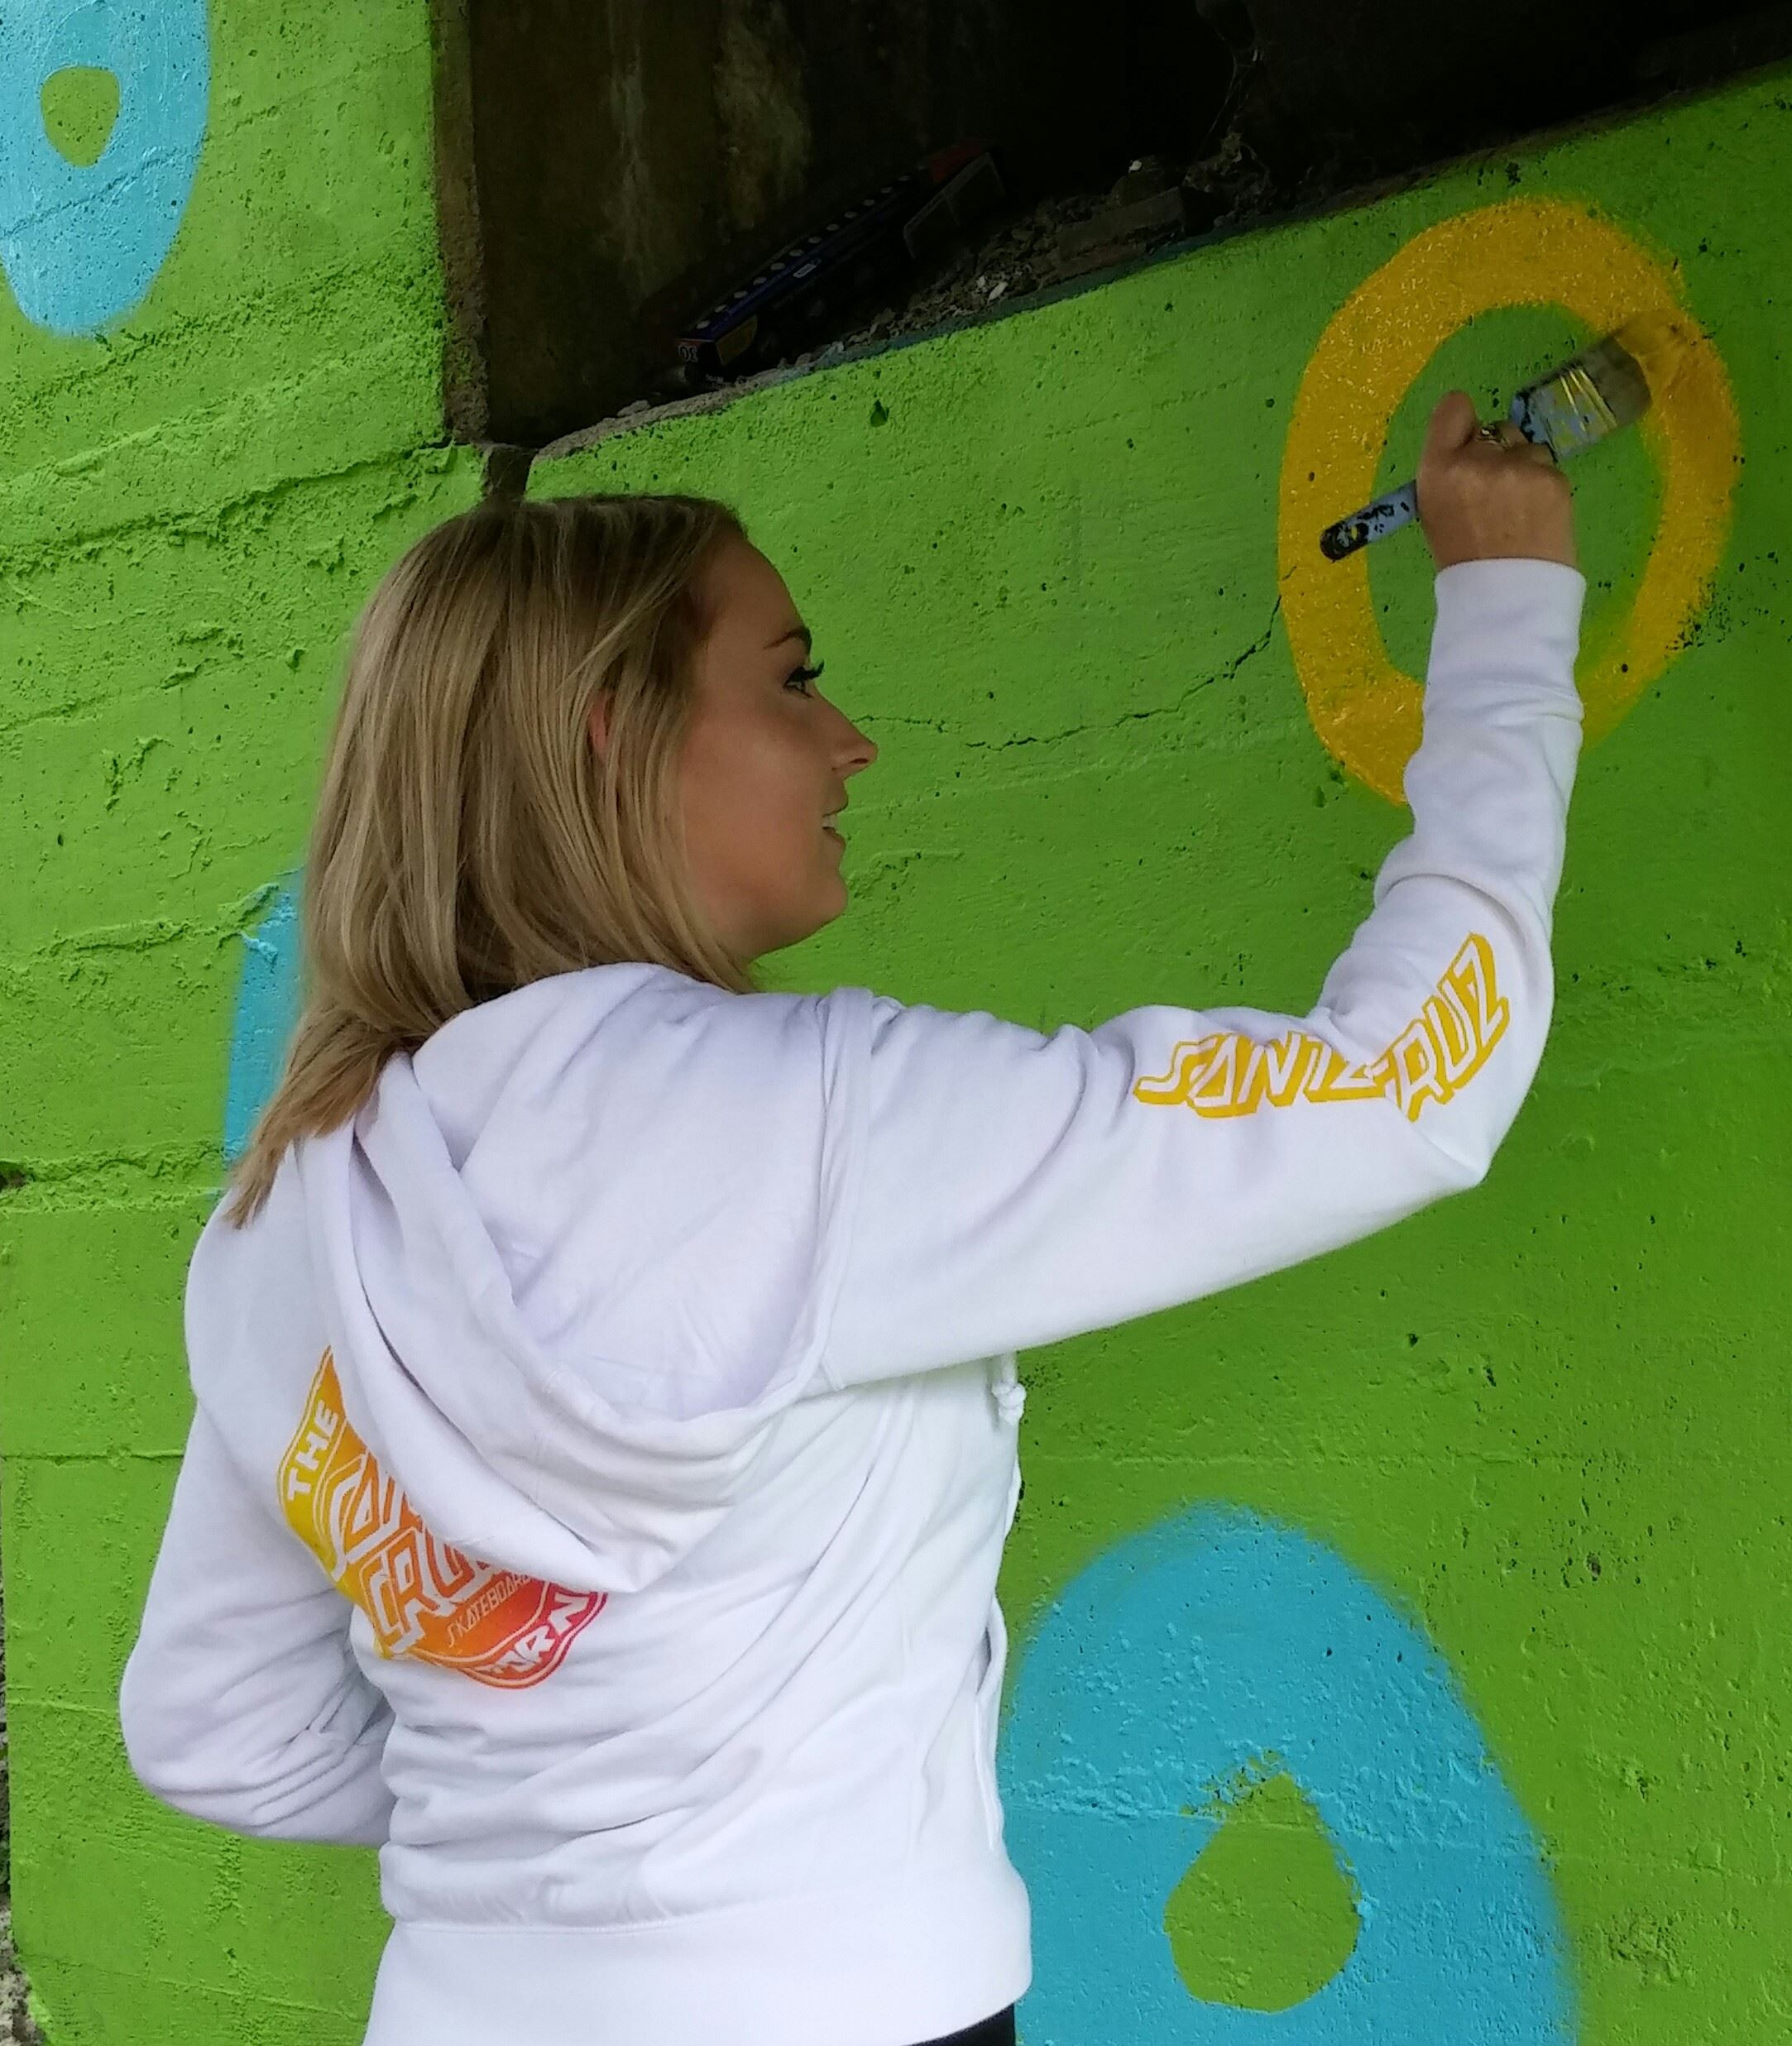 Teenager in white sweatshirt painting a yellow circle on a neon green painted wall